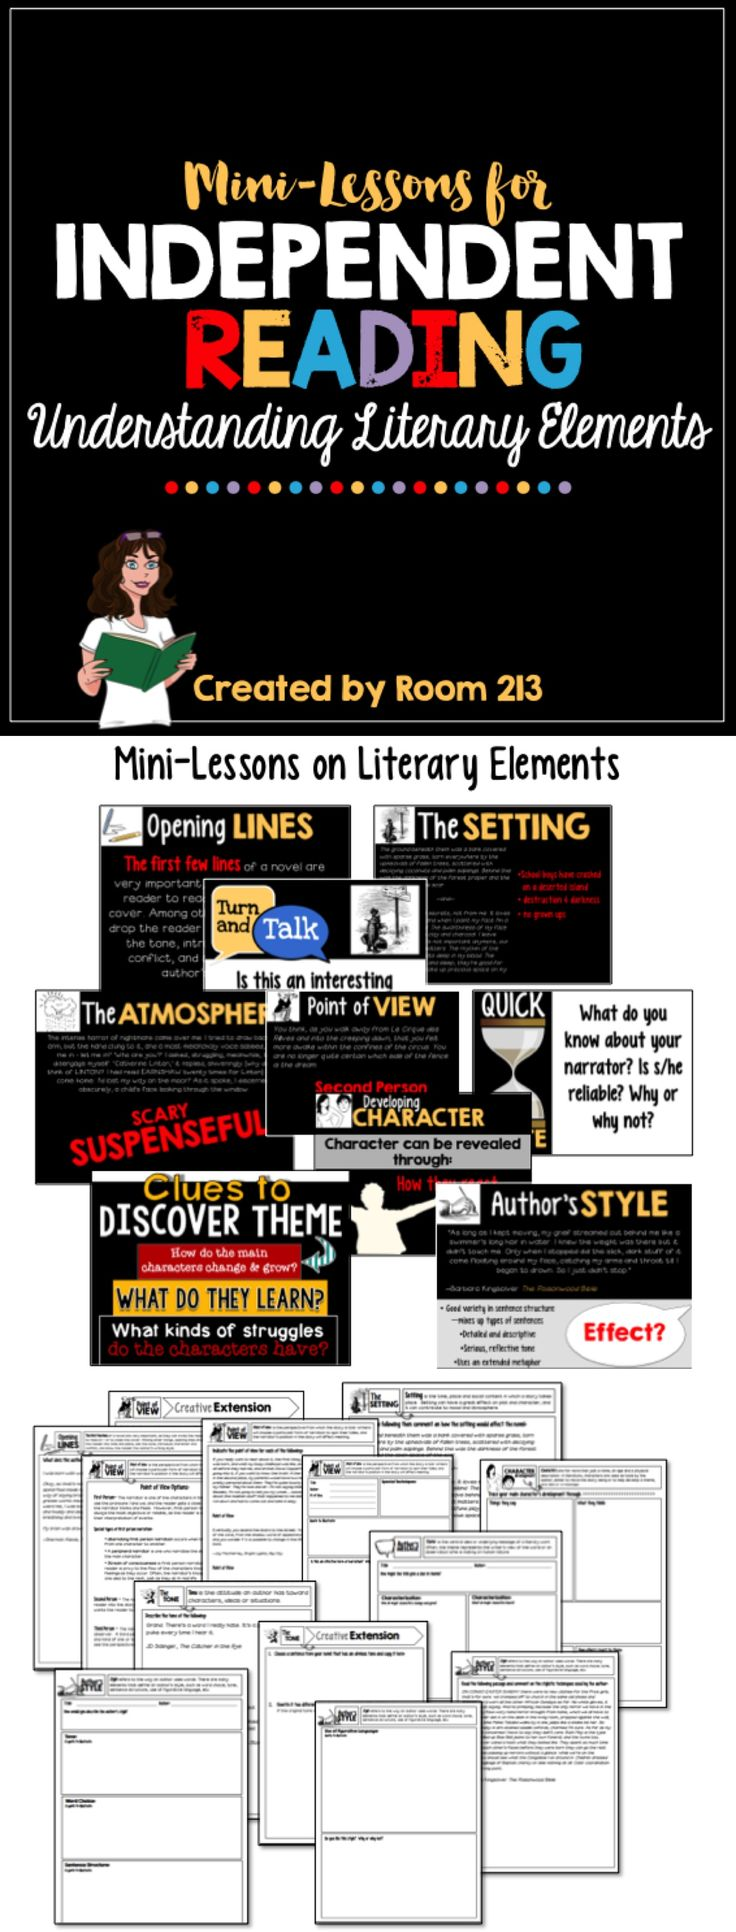 Mini-Lessons on literary elements like setting, atmosphere, theme and character.  Great for independent reading and reader's workshop in the secondary level. #reader's workshop #high school